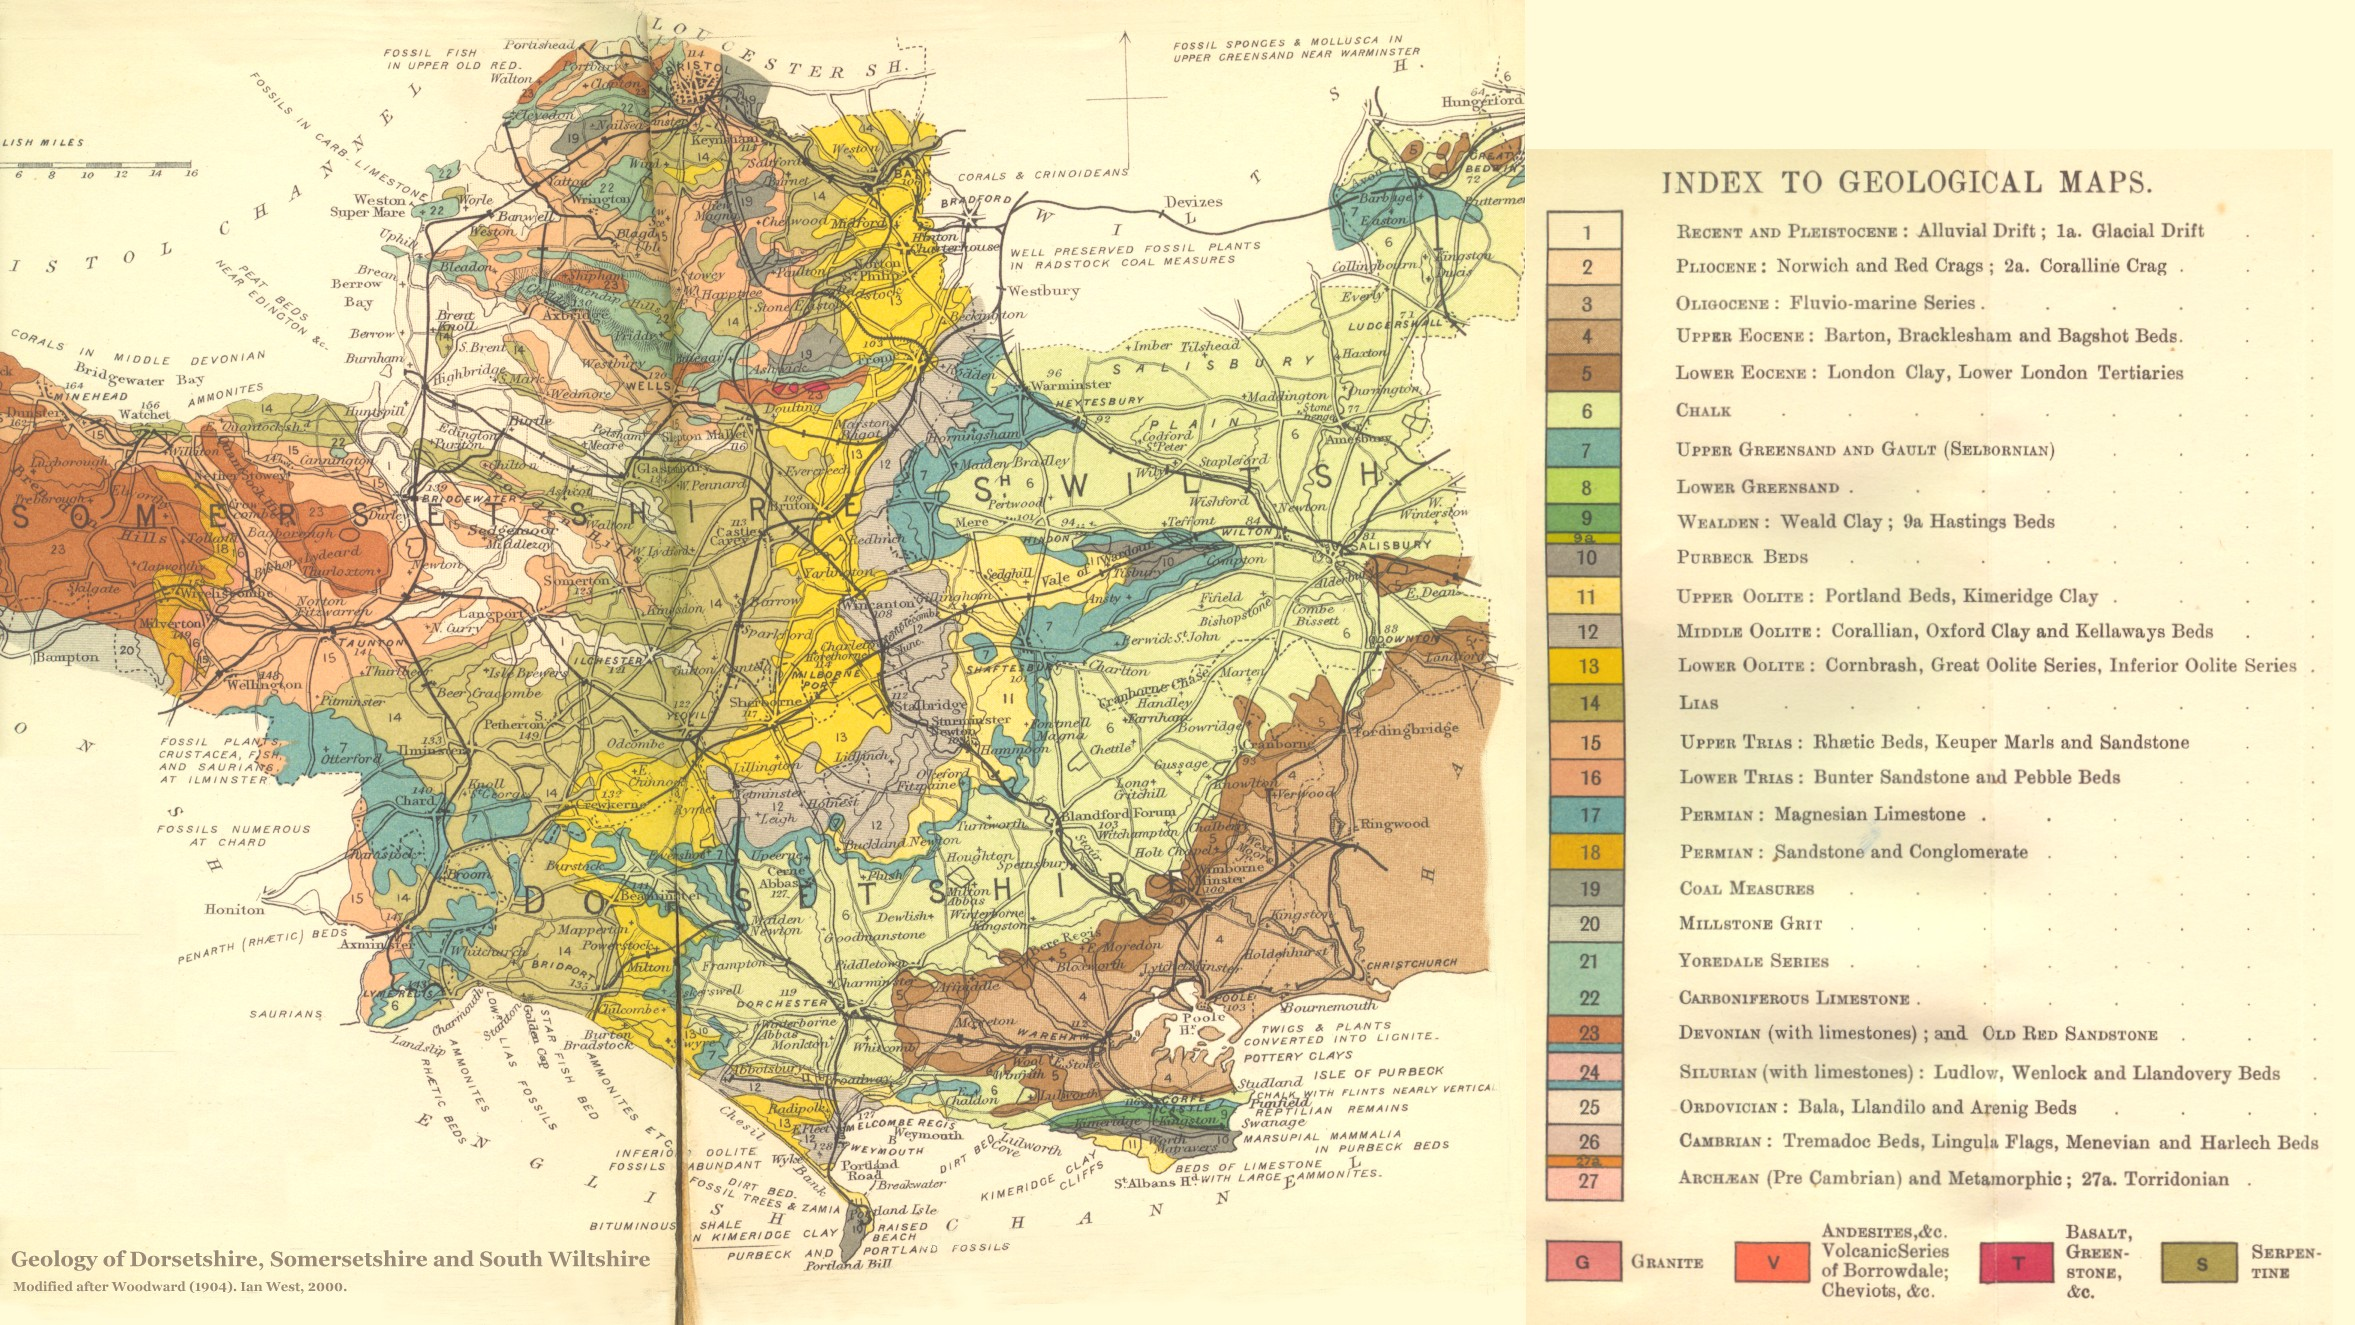 Show Map Of England.Geology Of The Central South Coast Of England Introduction And Maps